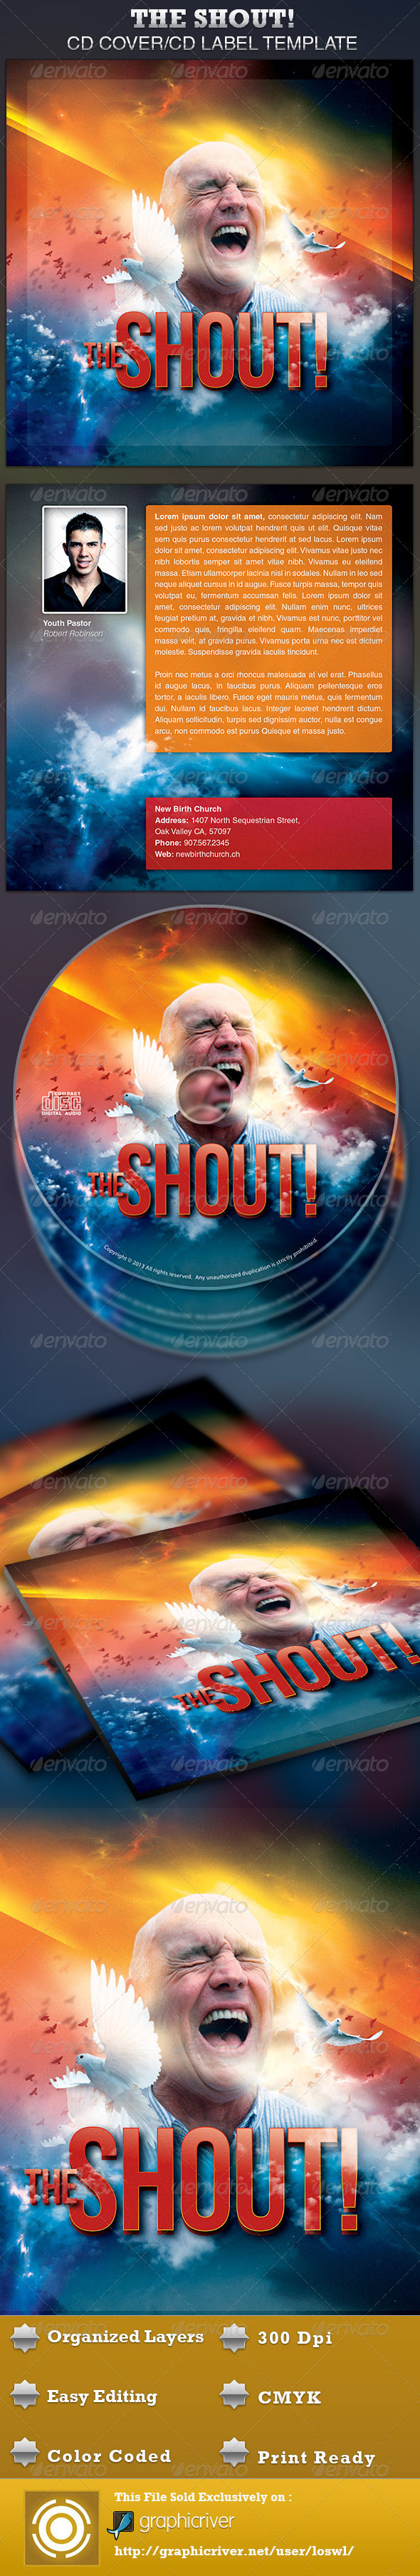 The Shout CD Artwork Template - CD & DVD Artwork Print Templates